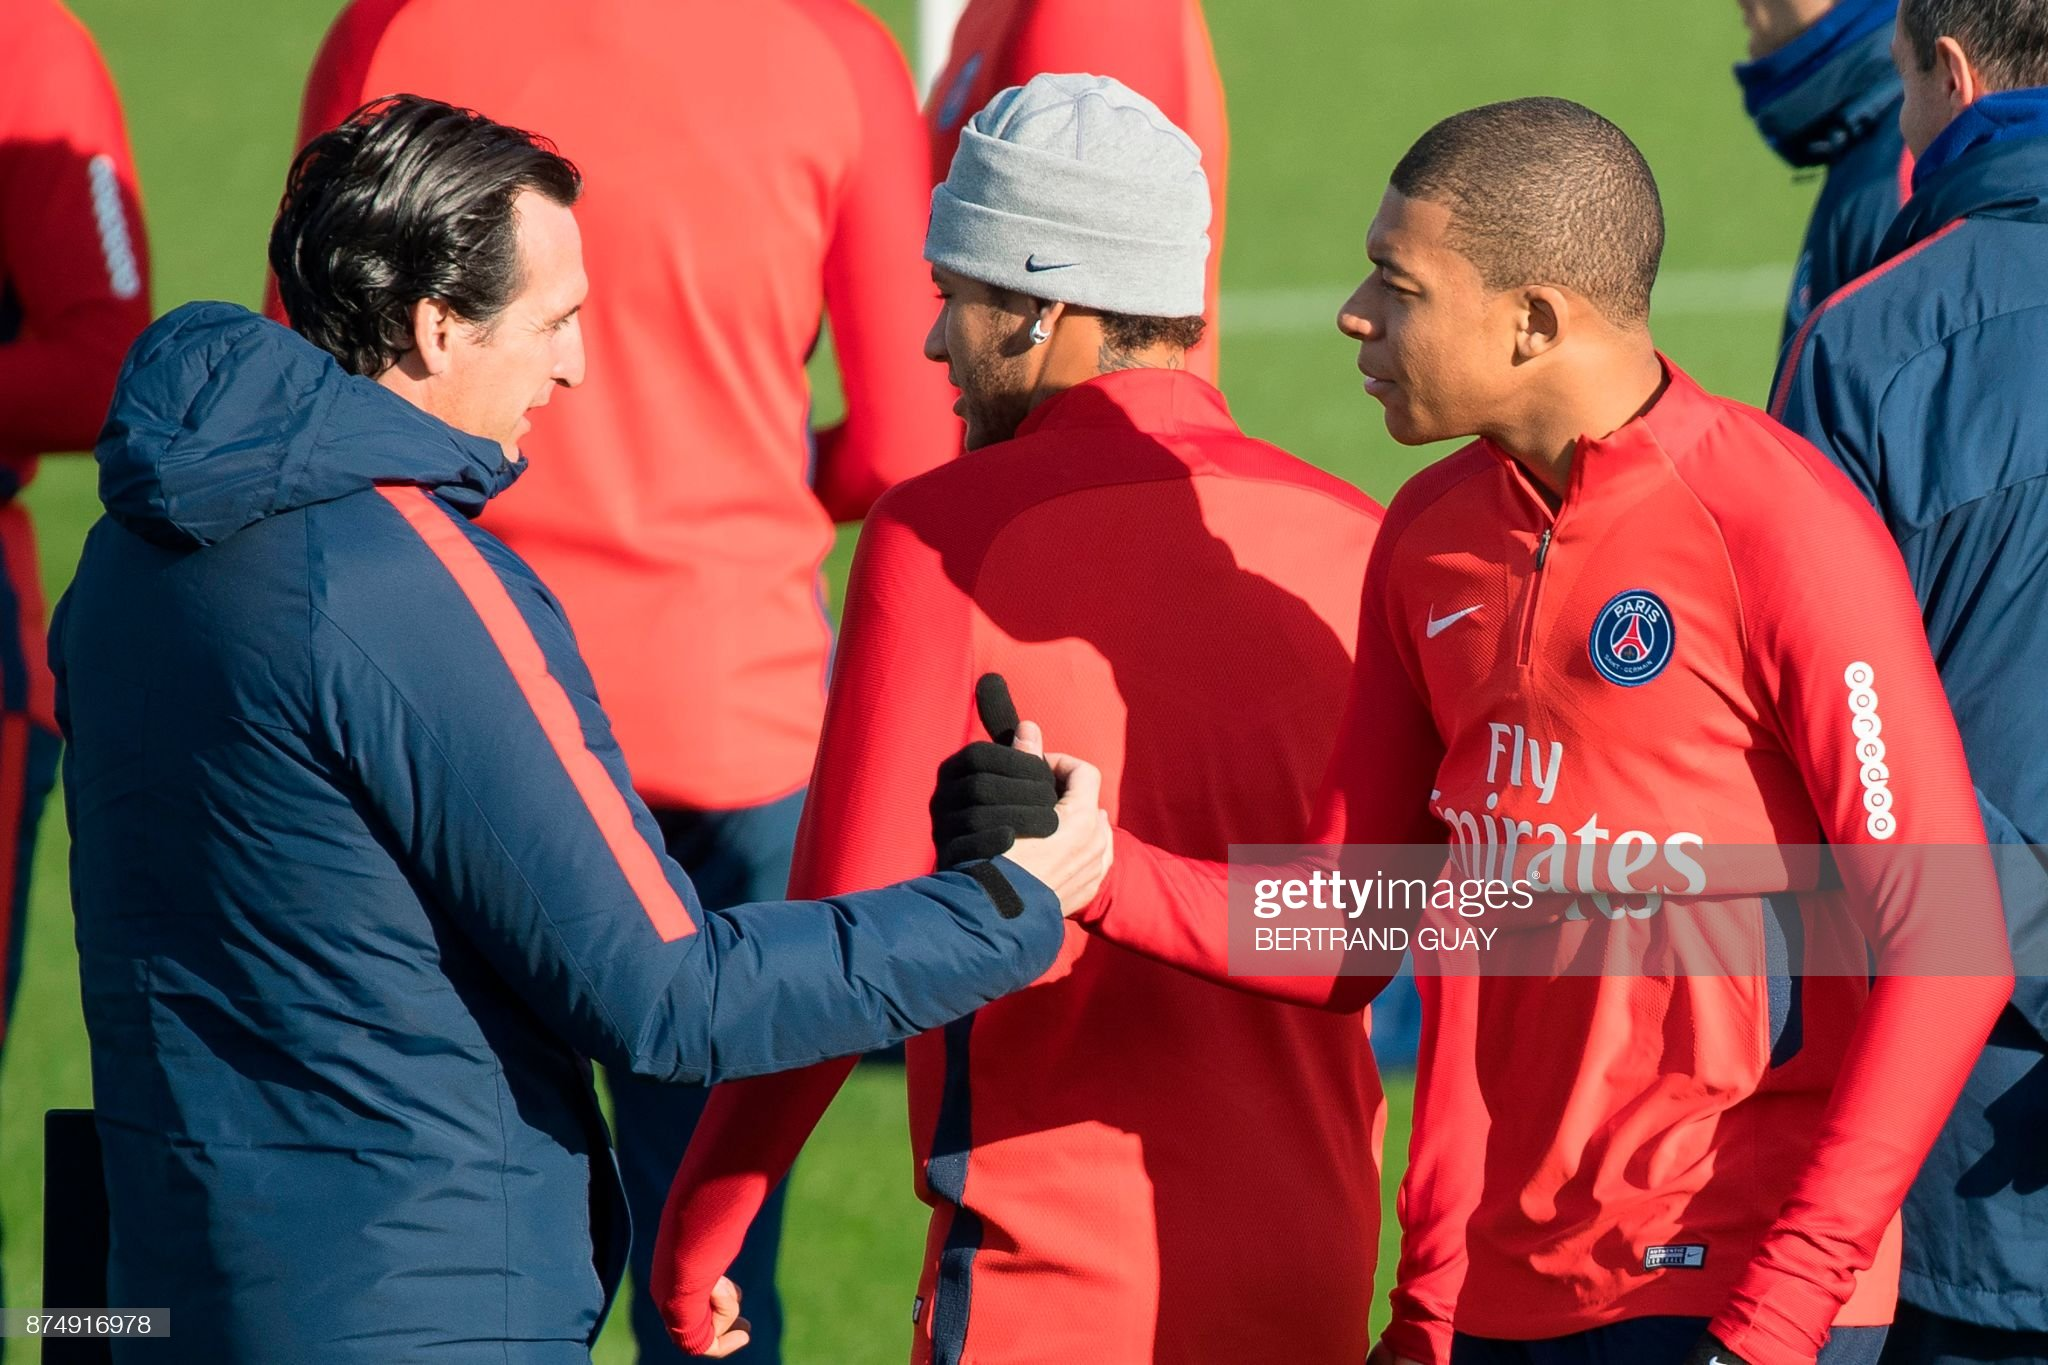 FBL-FRA-LIGUE 1-PSG-TRAINING : News Photo